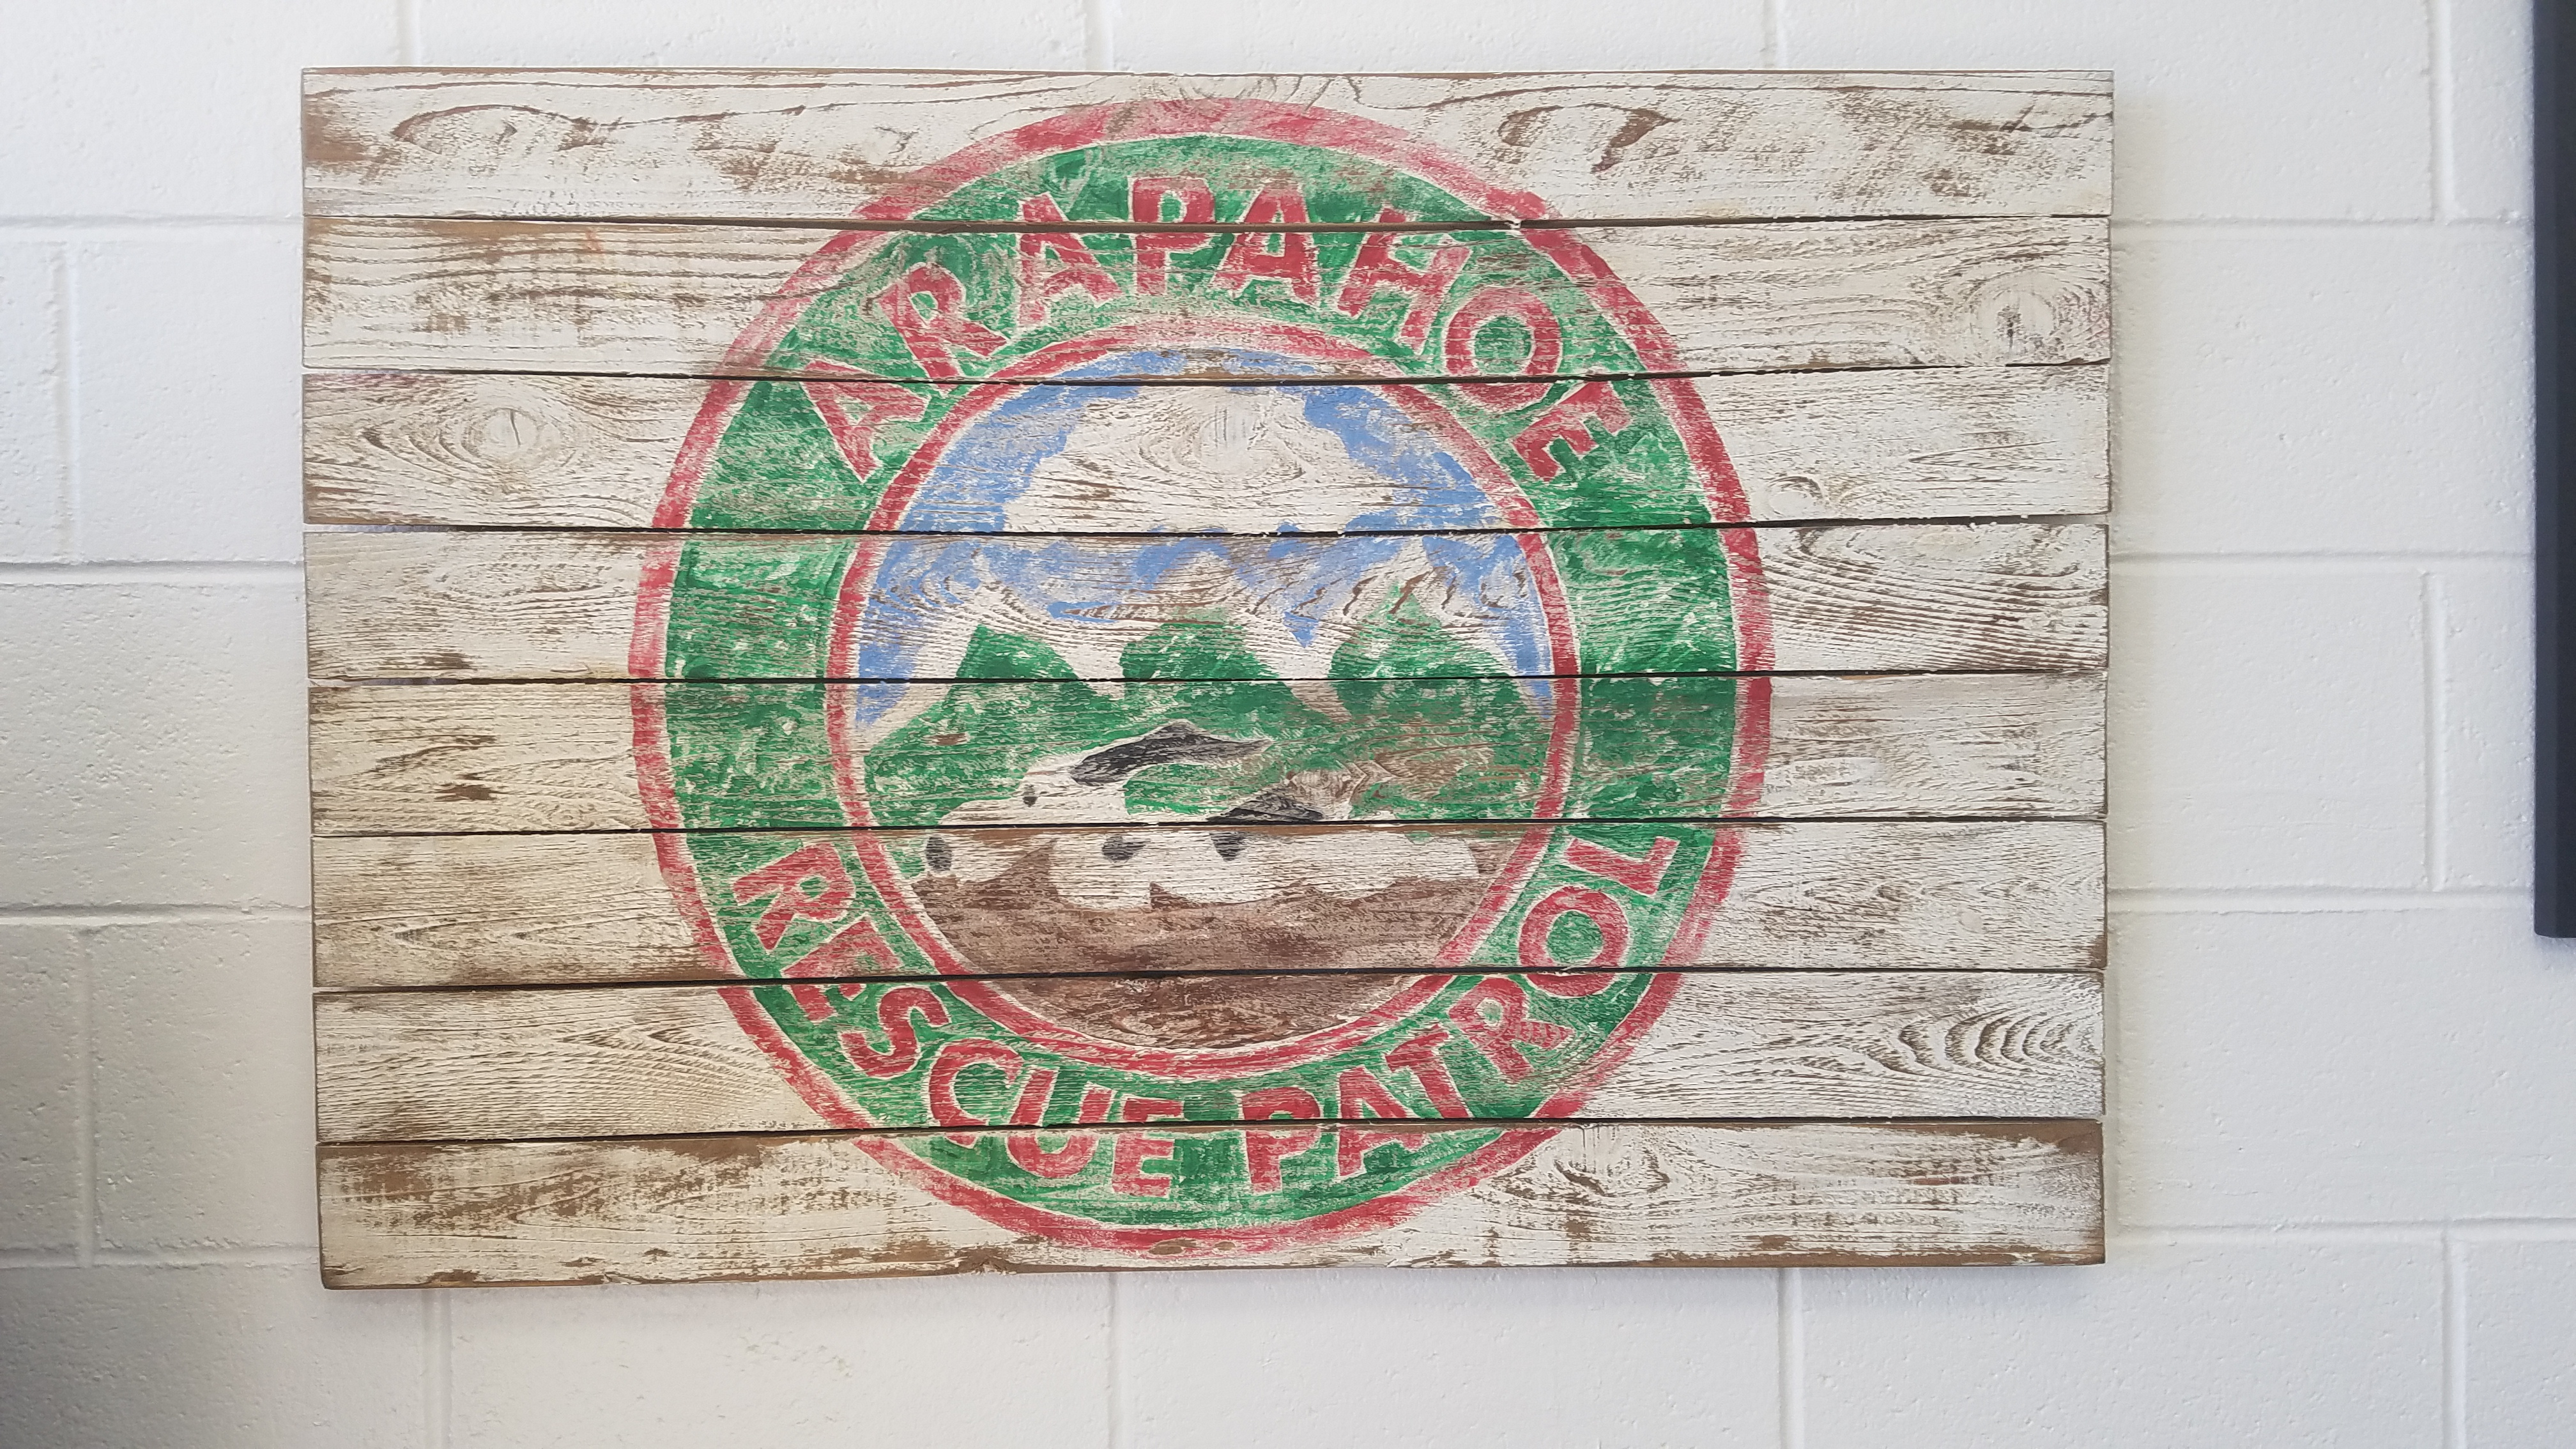 We were high bidder on this cool painted sign of the Arapahoe Rescue Patrol Logo.